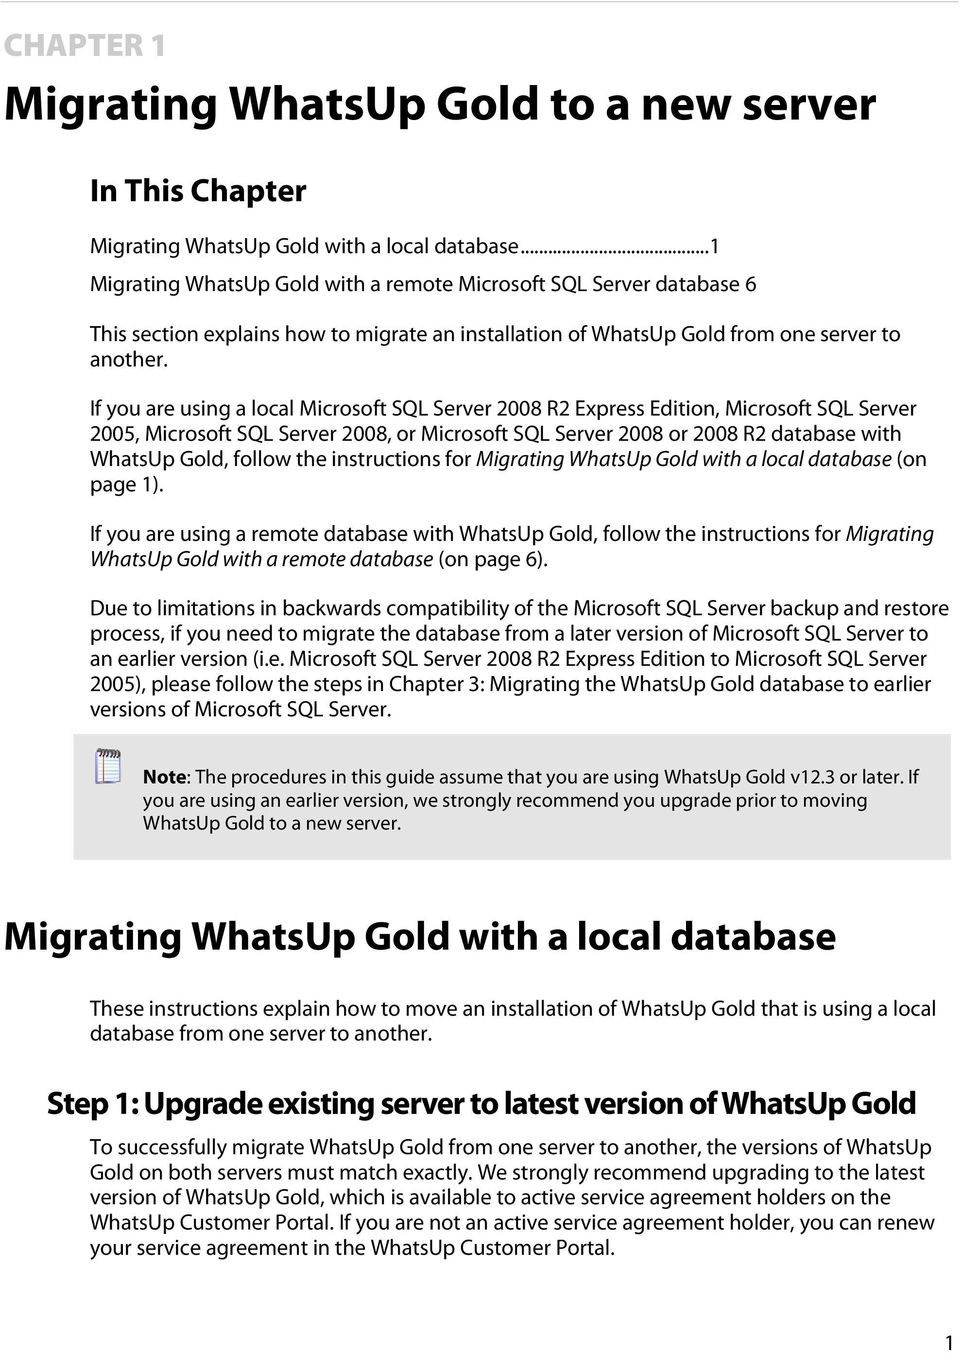 If you are using a local Microsoft SQL Server 2008 R2 Express Edition, Microsoft SQL Server 2005, Microsoft SQL Server 2008, or Microsoft SQL Server 2008 or 2008 R2 database with WhatsUp Gold, follow